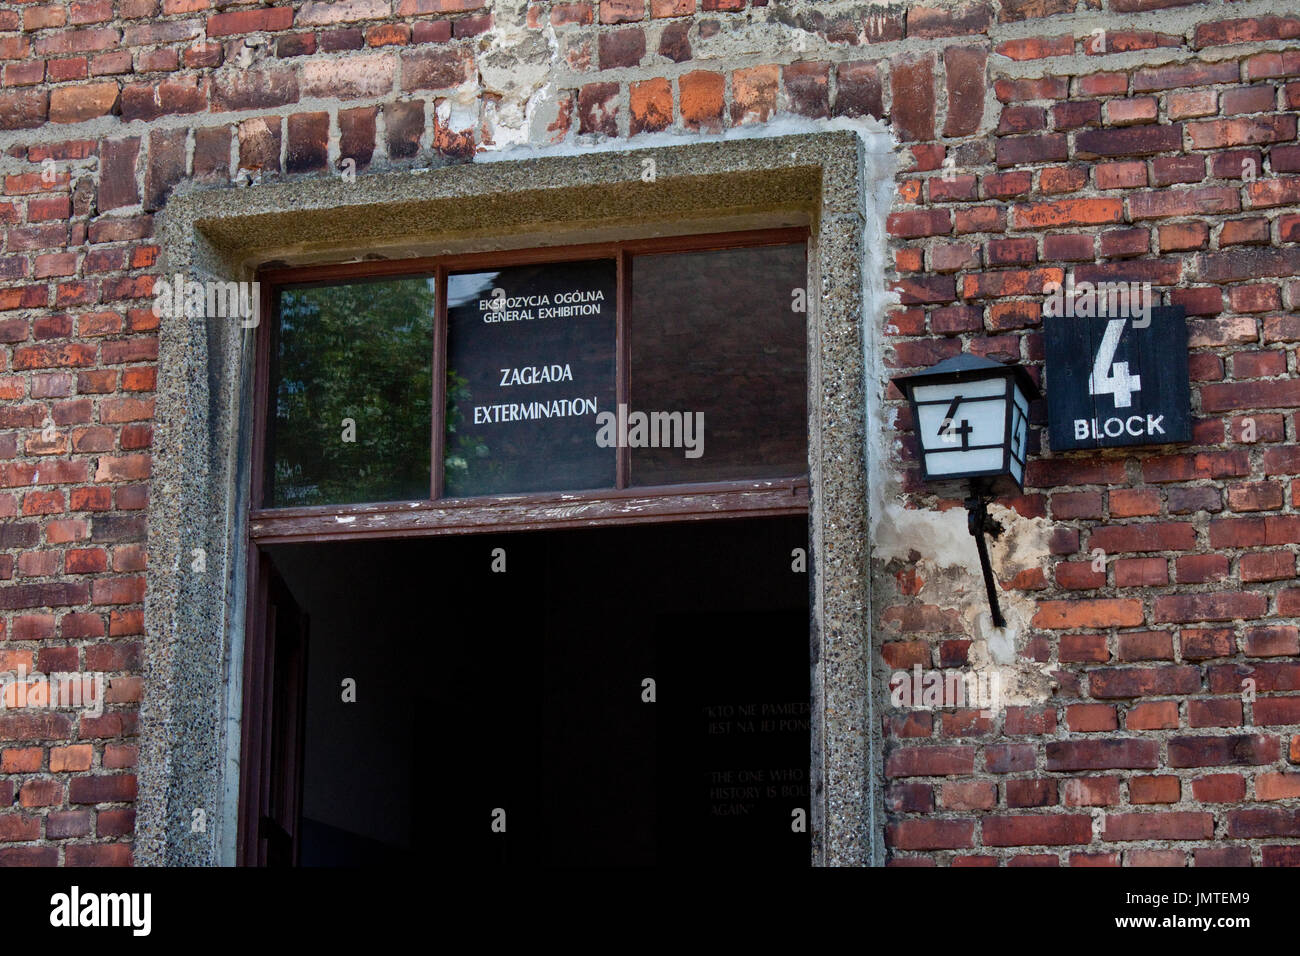 The entrance to the extermination building block 4 at the Auschwitz concentration camp - Stock Image